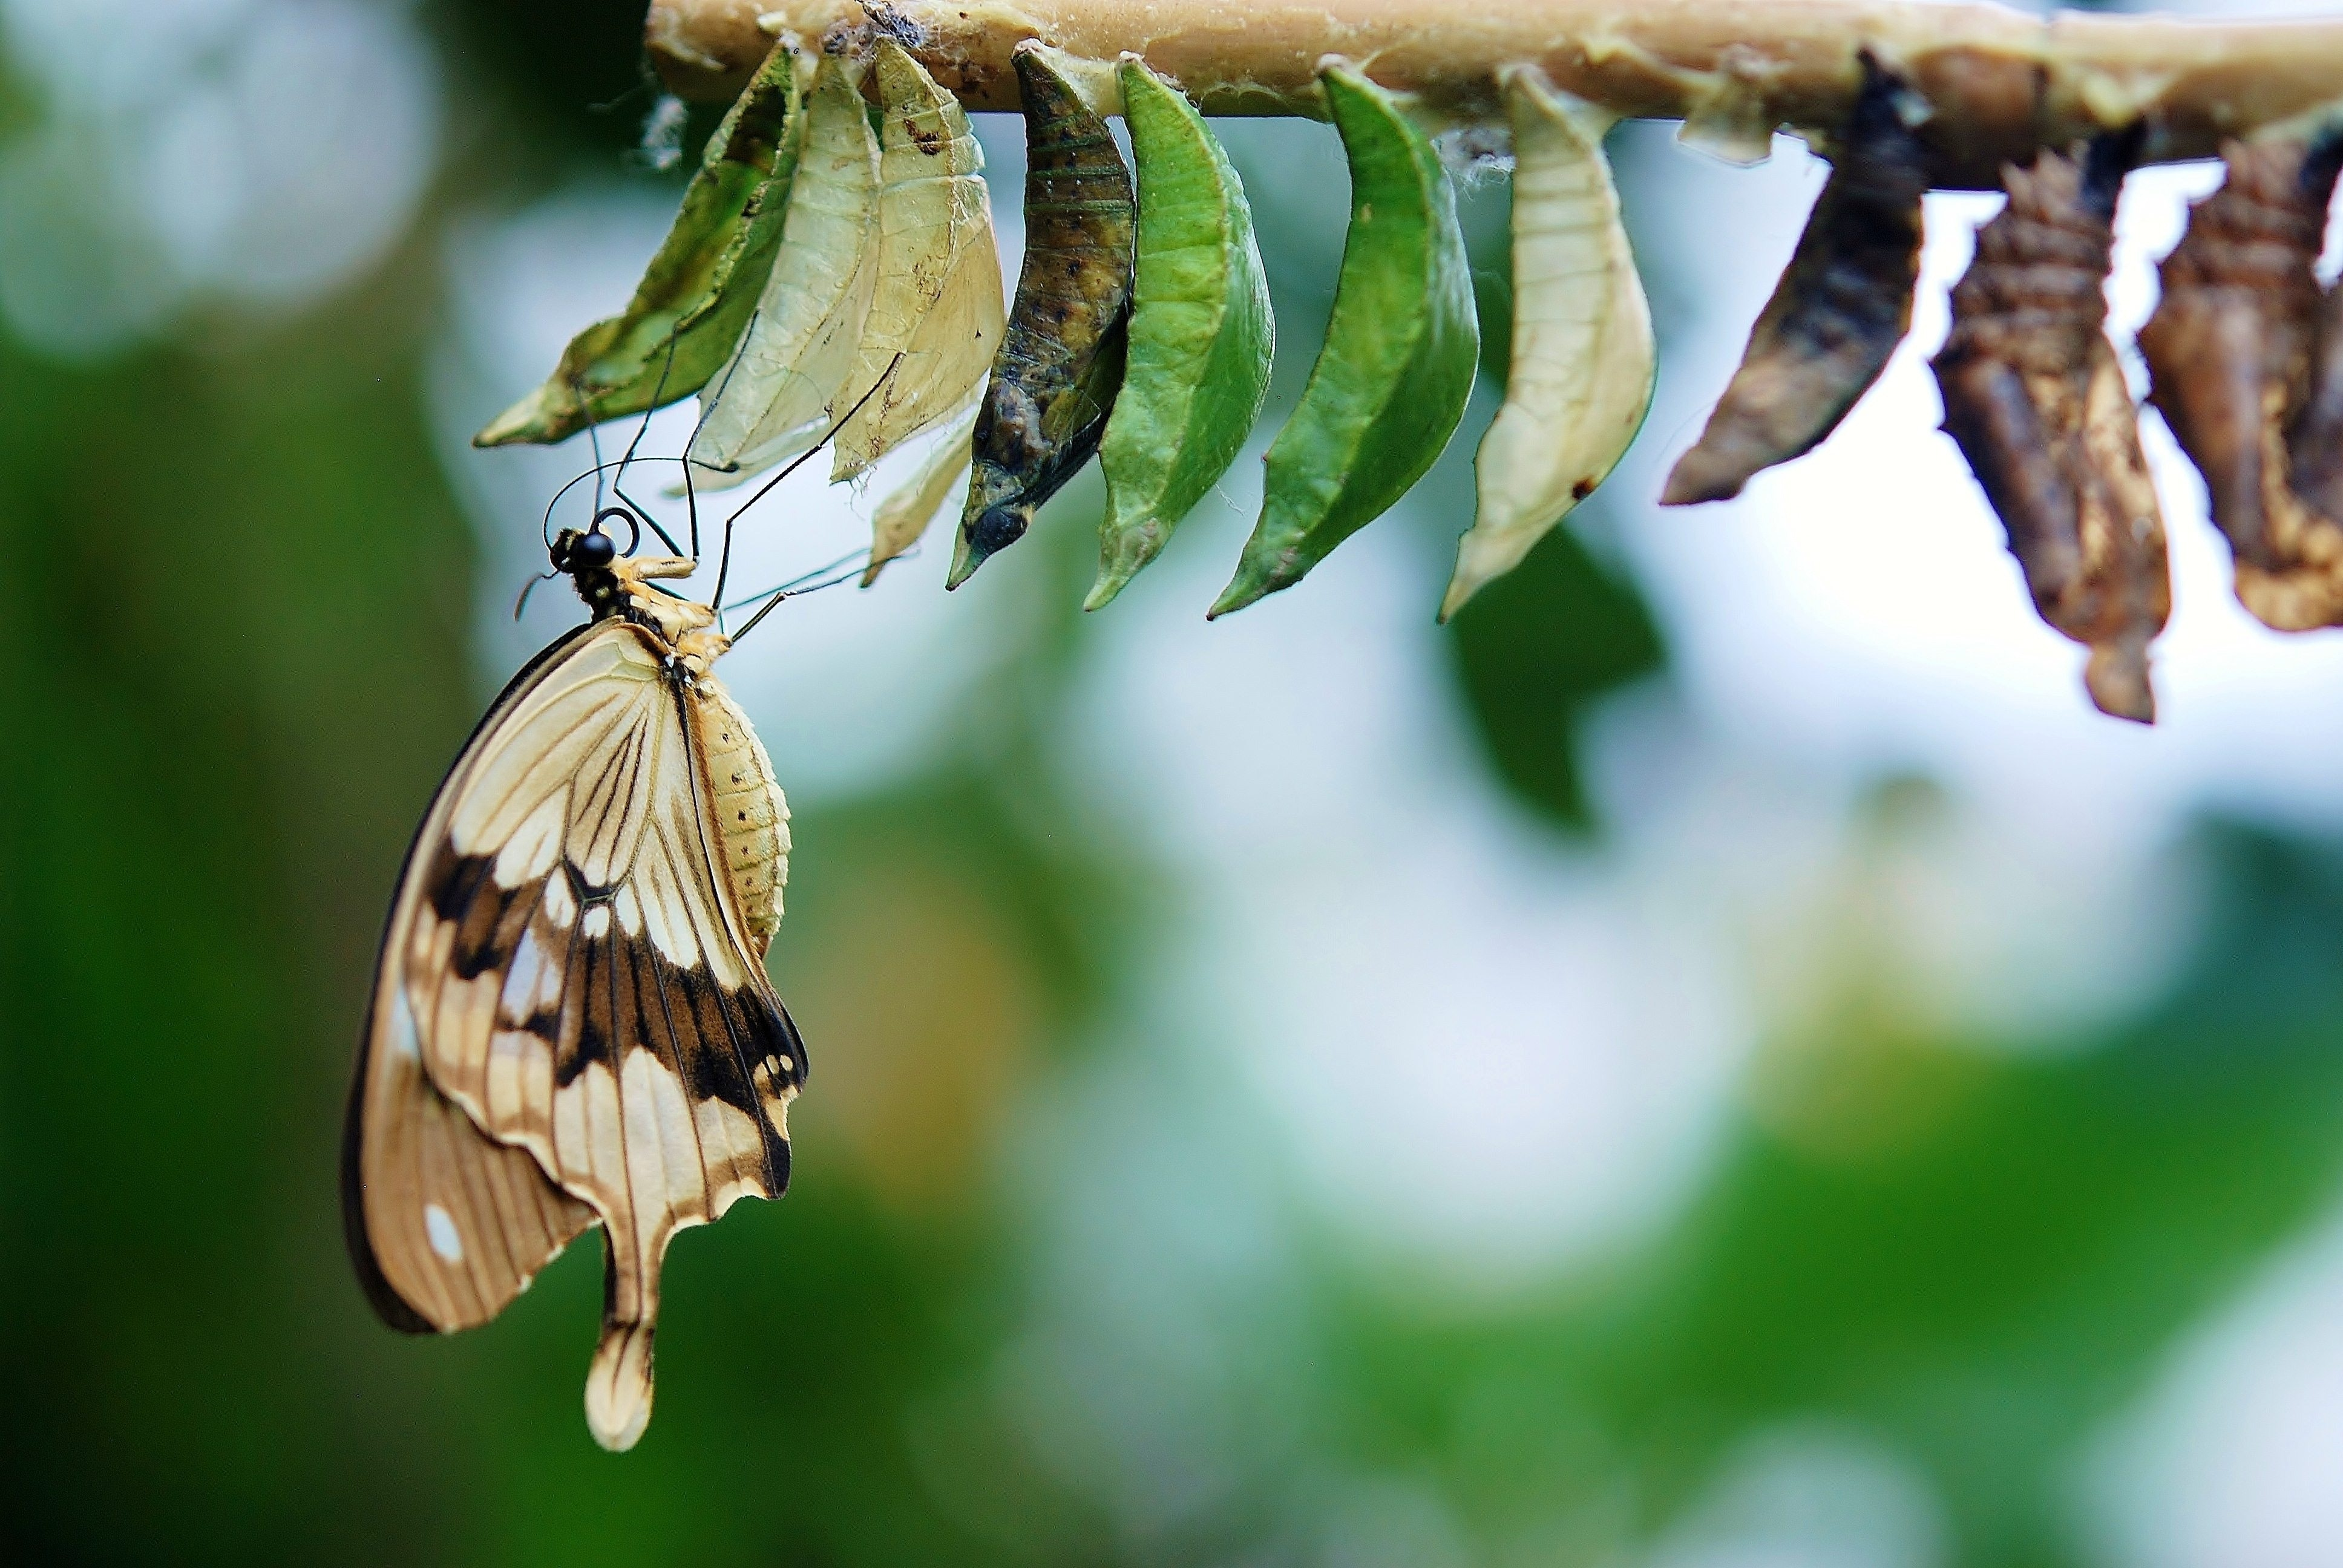 brown-and-white-swallowtail-butterfly-under-white-green-and-63643